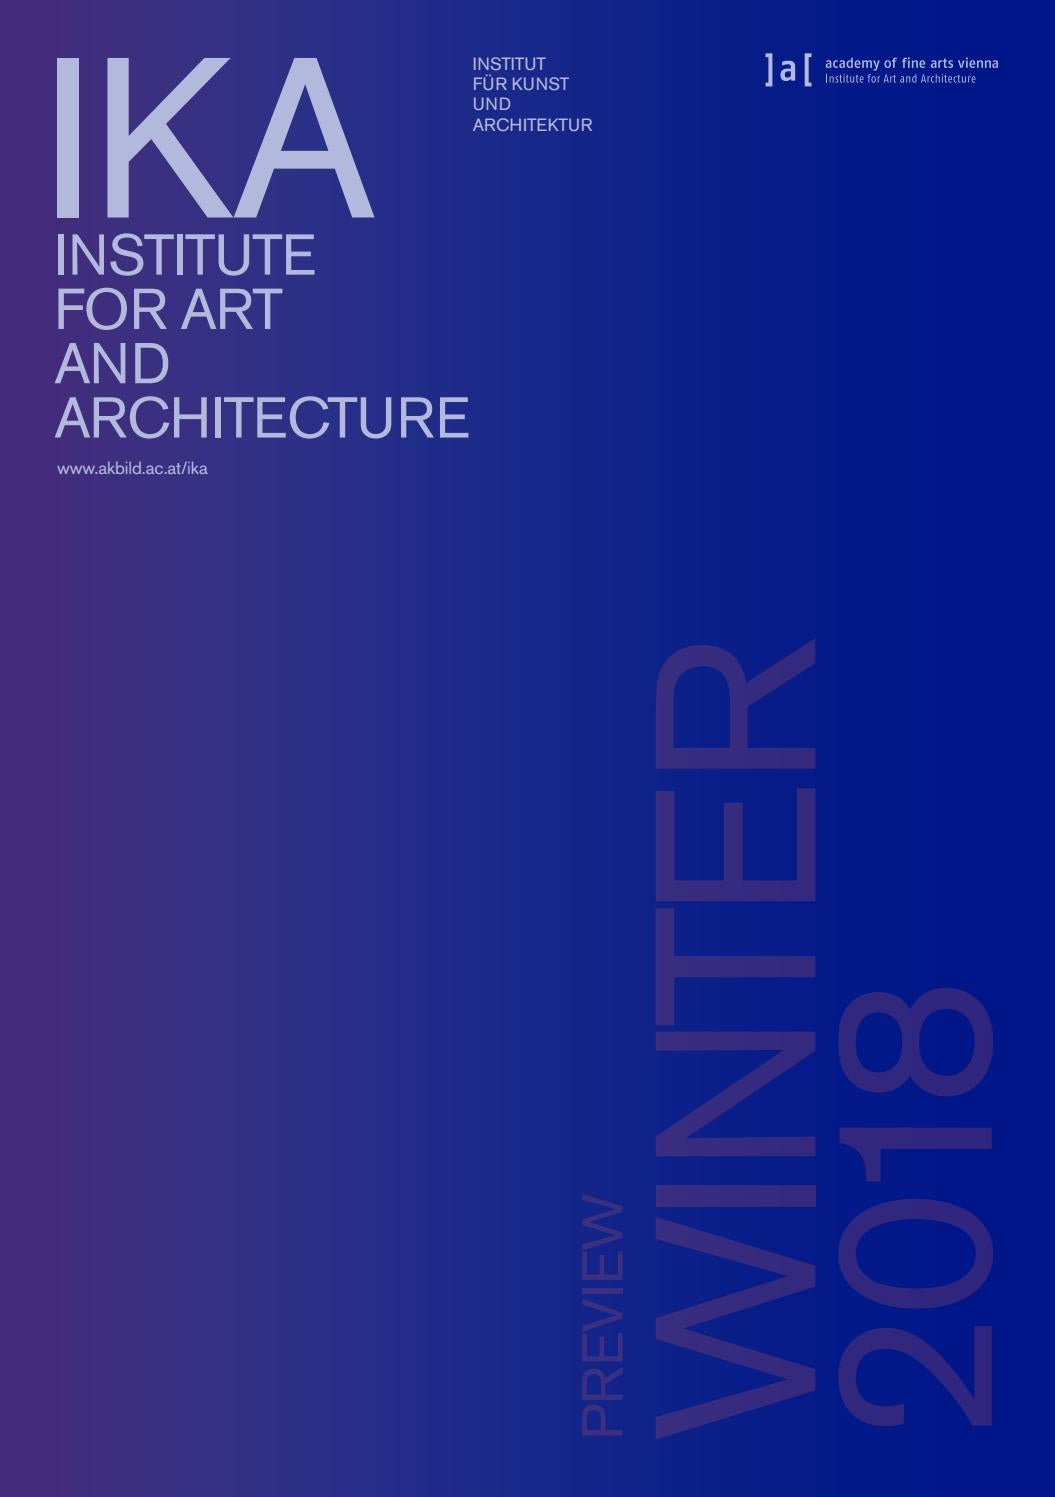 IKA PREVIEW Winter 2018 by IKA Institute for Art and Architecture - issuu